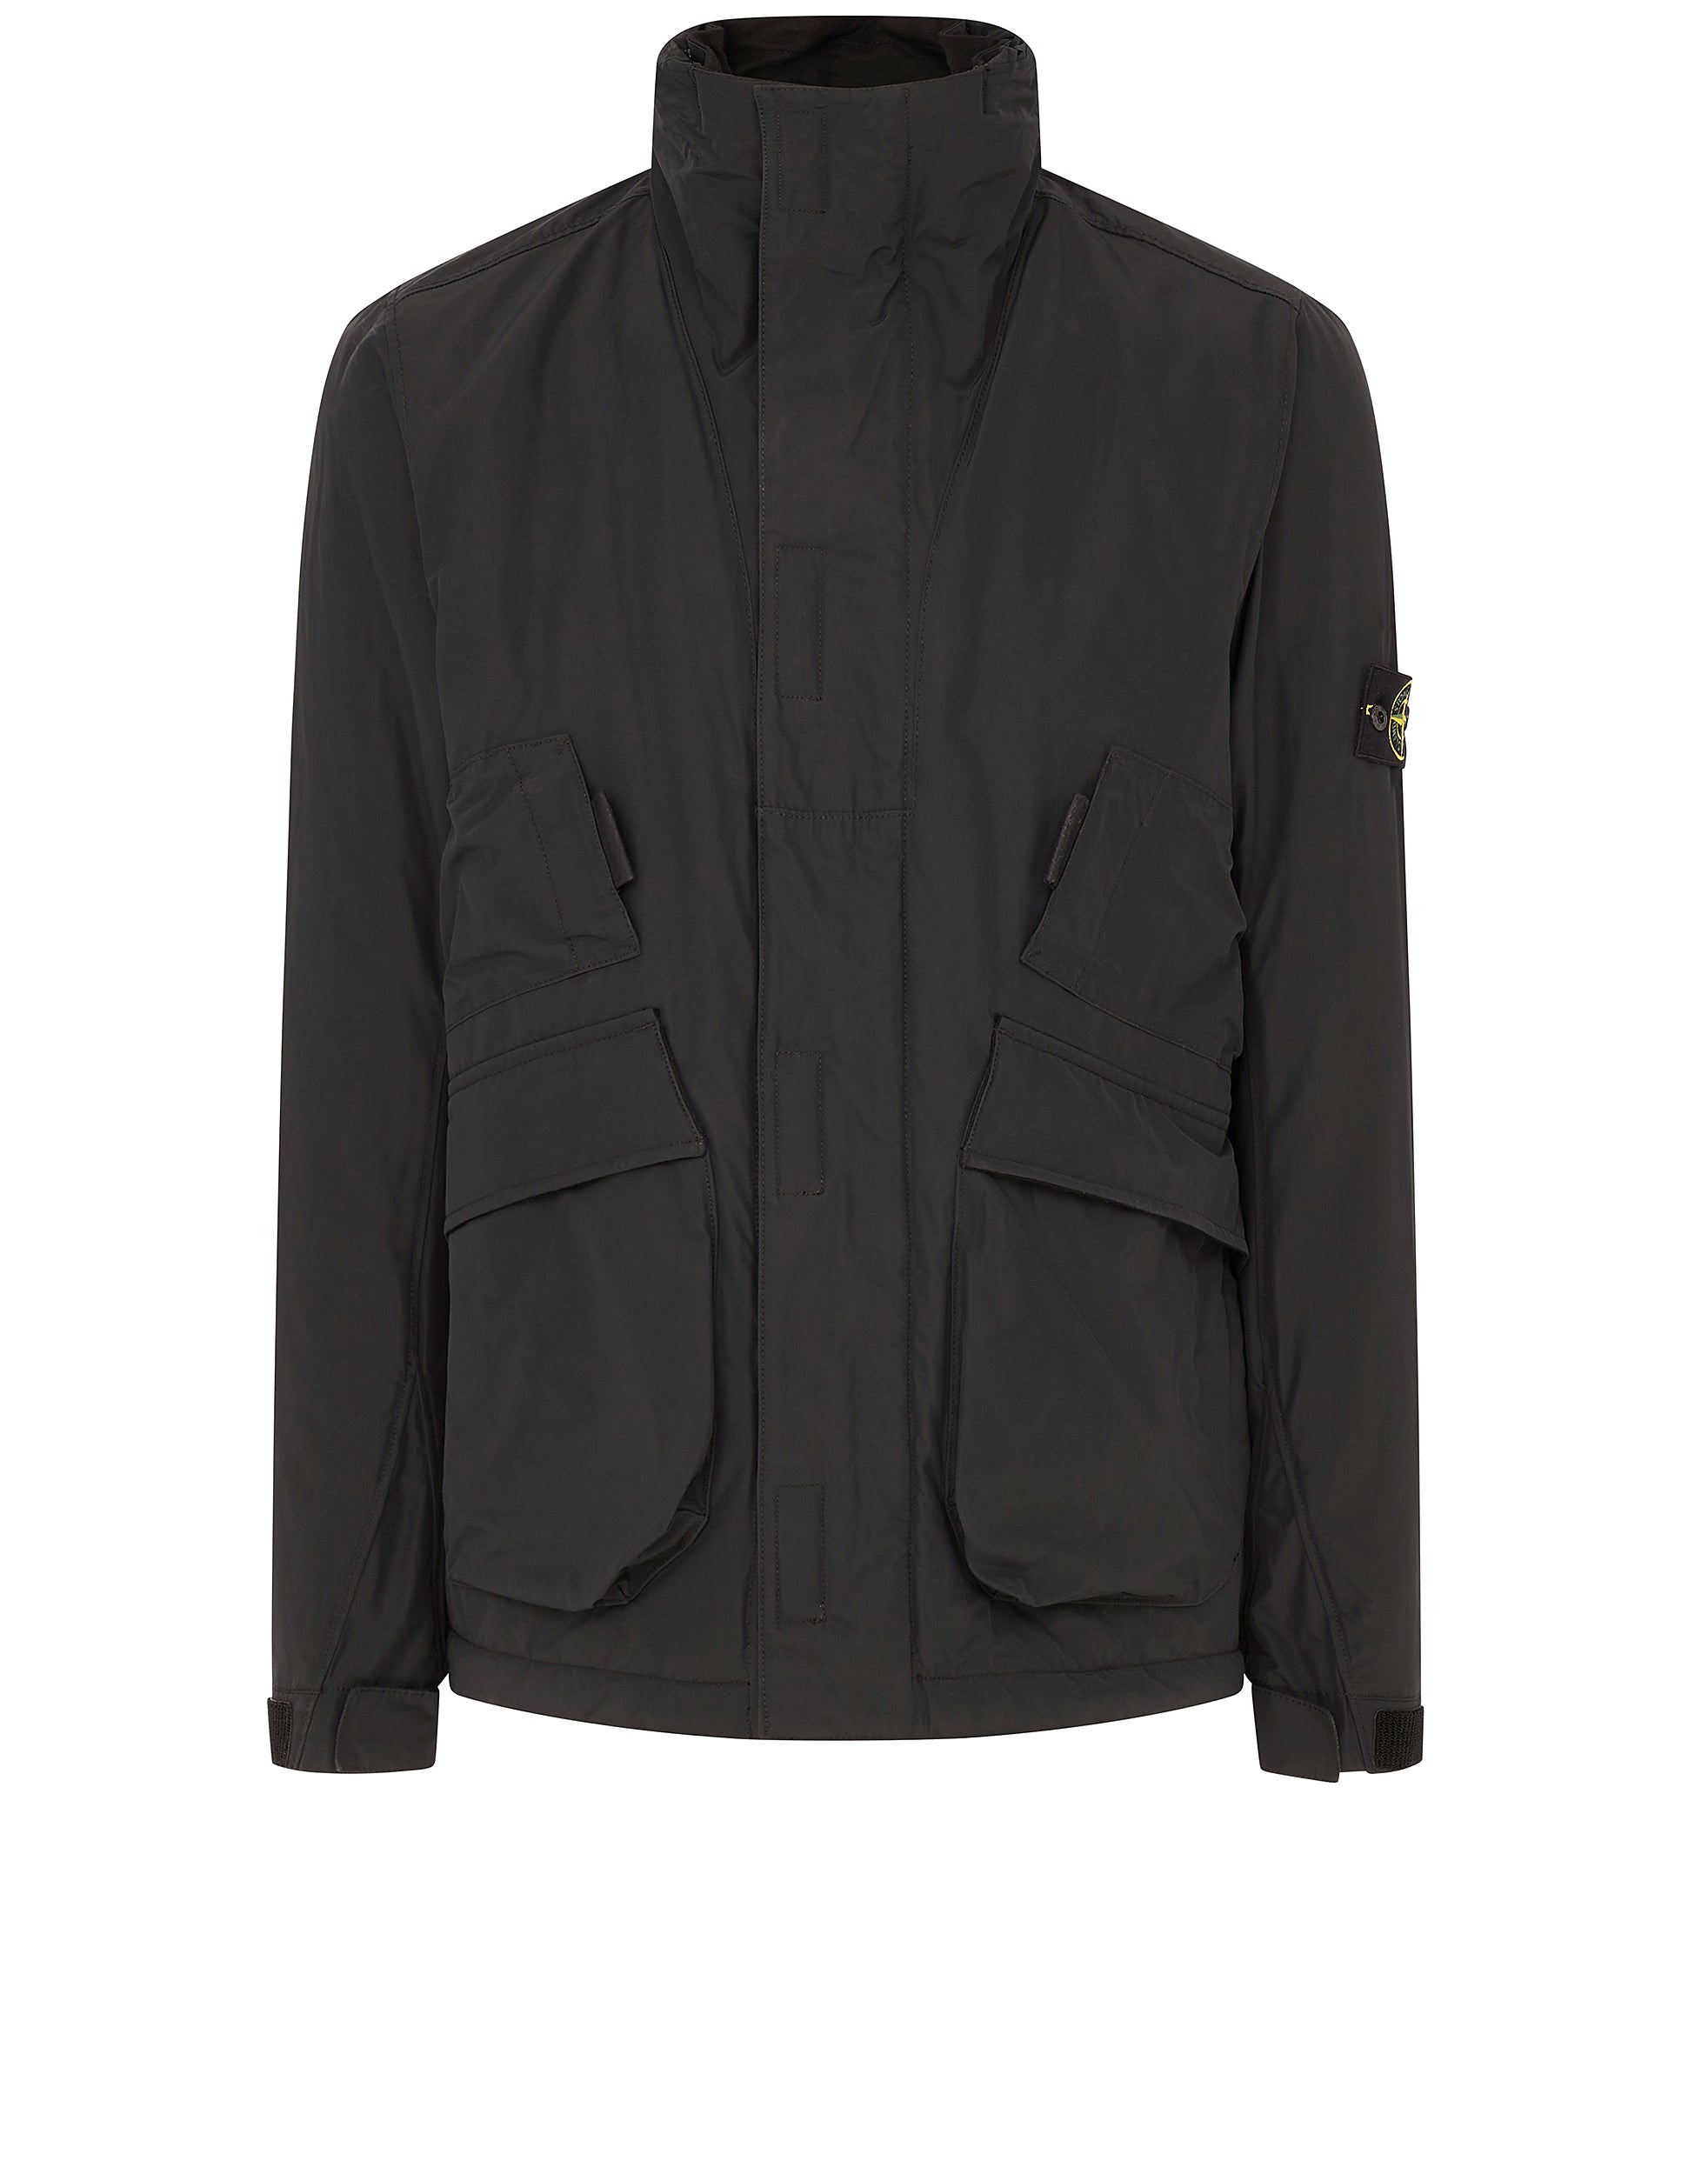 41726 MICRO REPS WITH PRIMALOFT® INSULATION TECHNOLOGY Jacket in Coal Grey